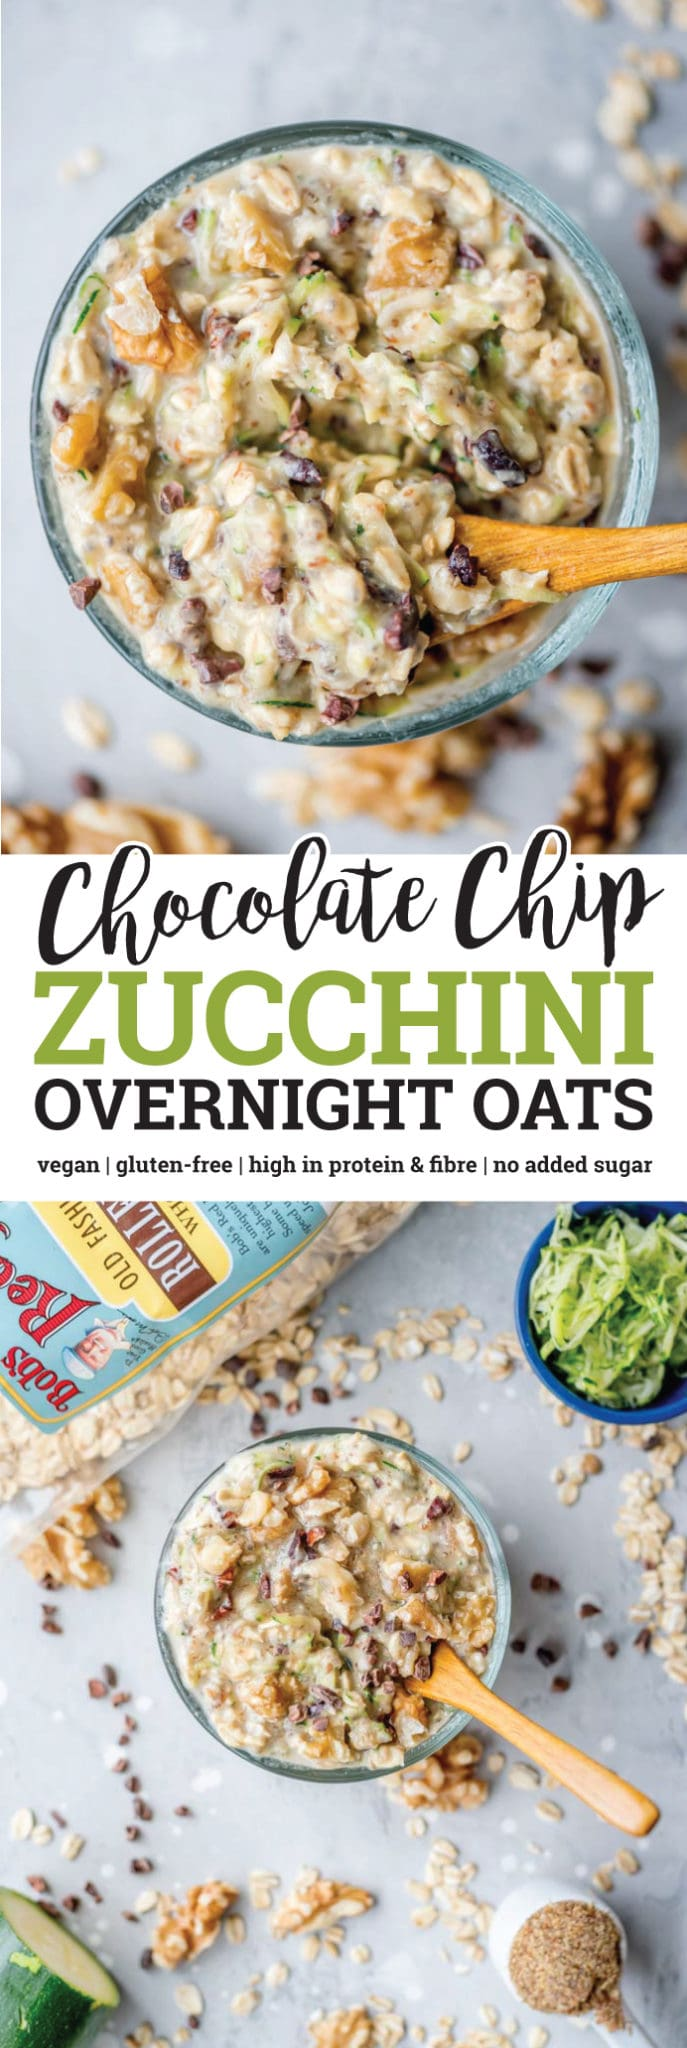 These gluten-free, vegan, chocolate chip zucchini overnight oats with protein taste like chocolate chip zucchini bread but they're loaded with fibre, protein and energizing complex carbohydrates. Prep them the night before in minutes to wake up to a delicious, filling and healthy breakfast.